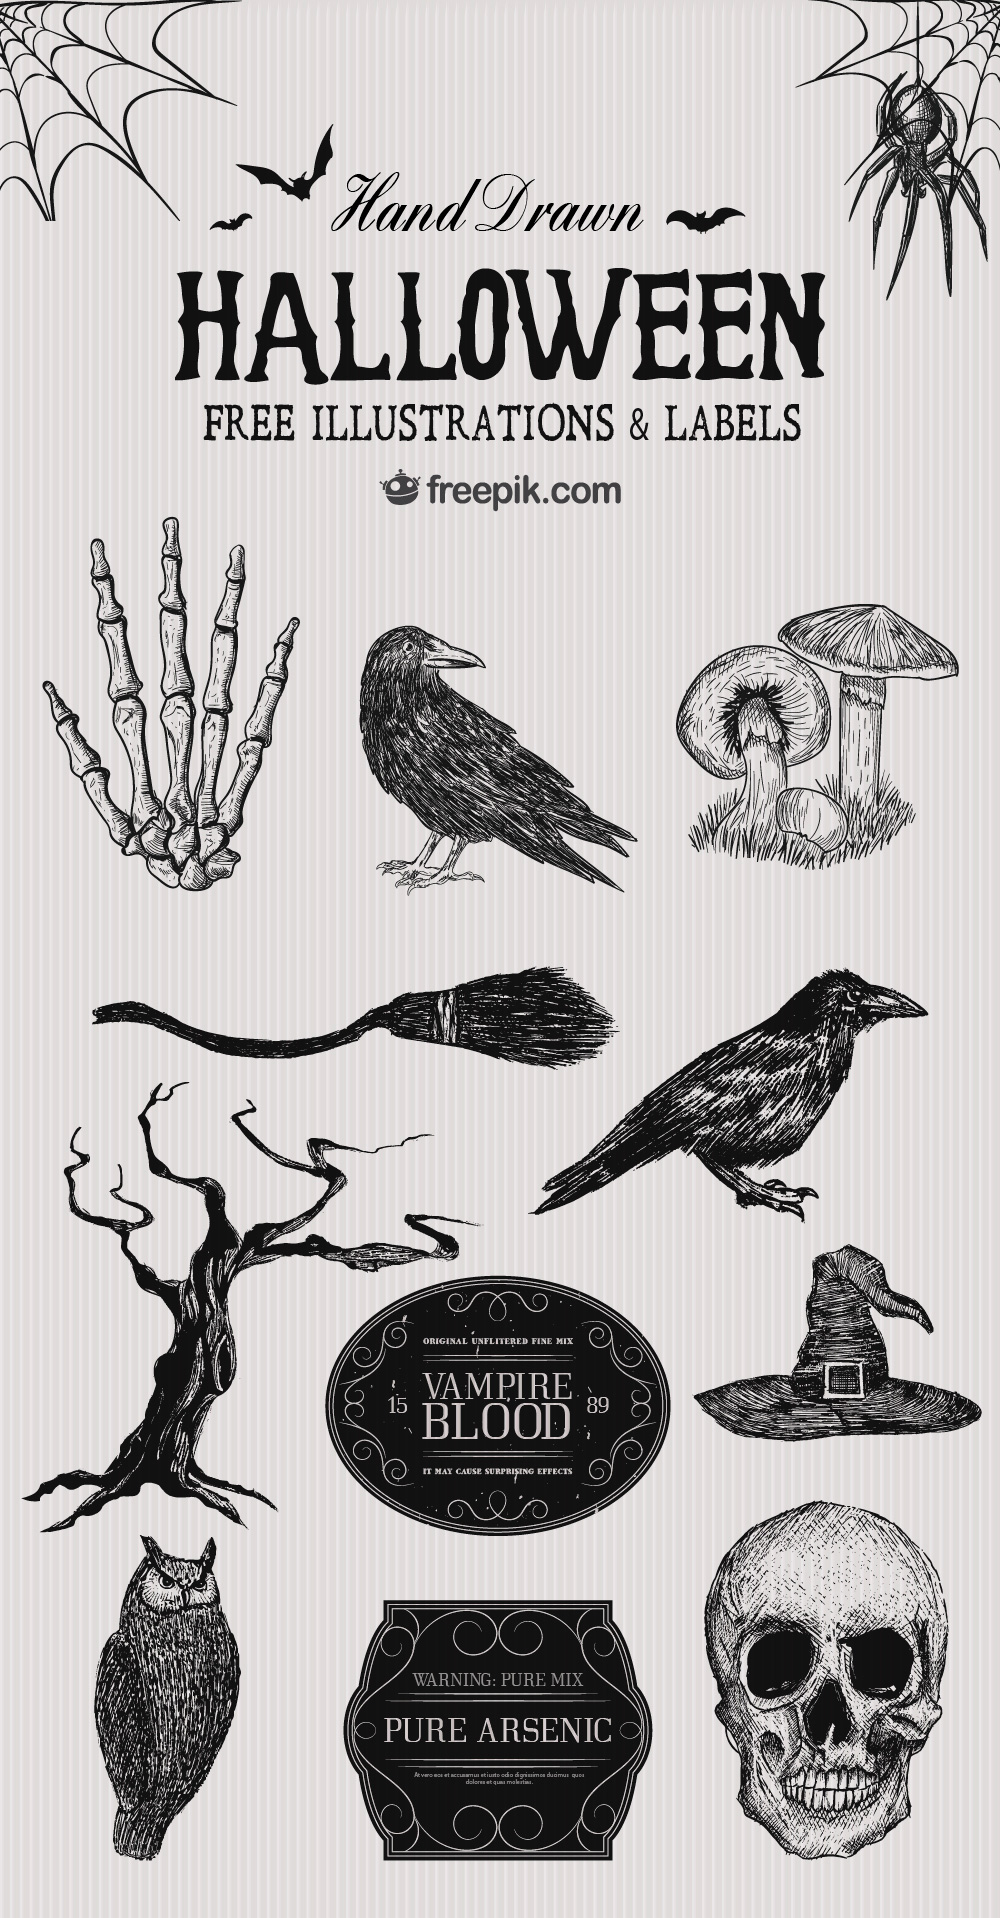 Free Halloween Illustrations & Labels